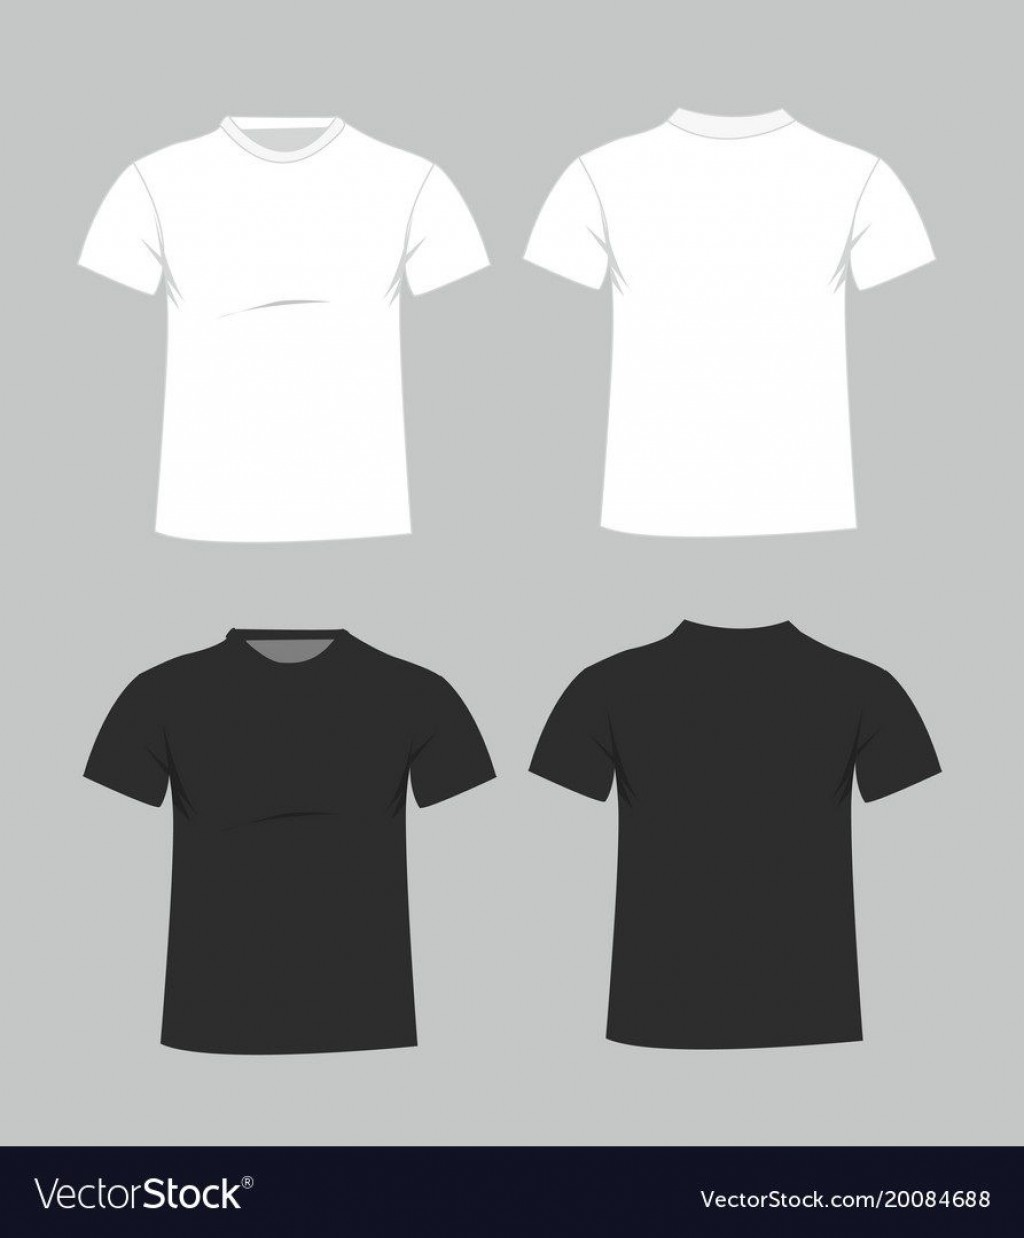 006 Magnificent Plain T Shirt Template Example  Blank Front And BackLarge